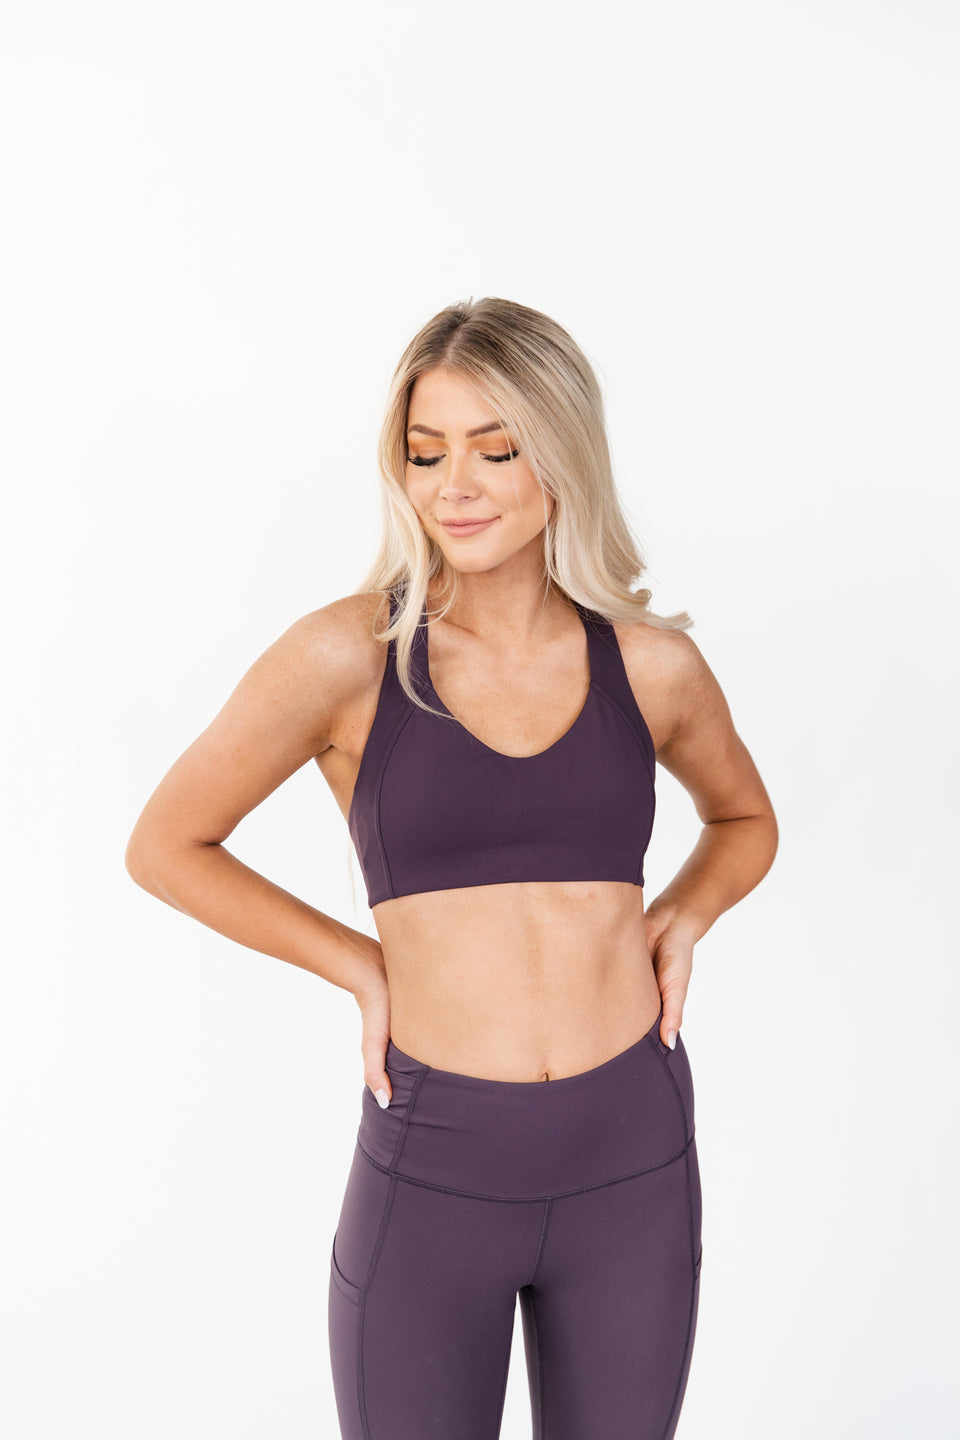 SALE ARK ii SPORTS BRA - IMPERIAL